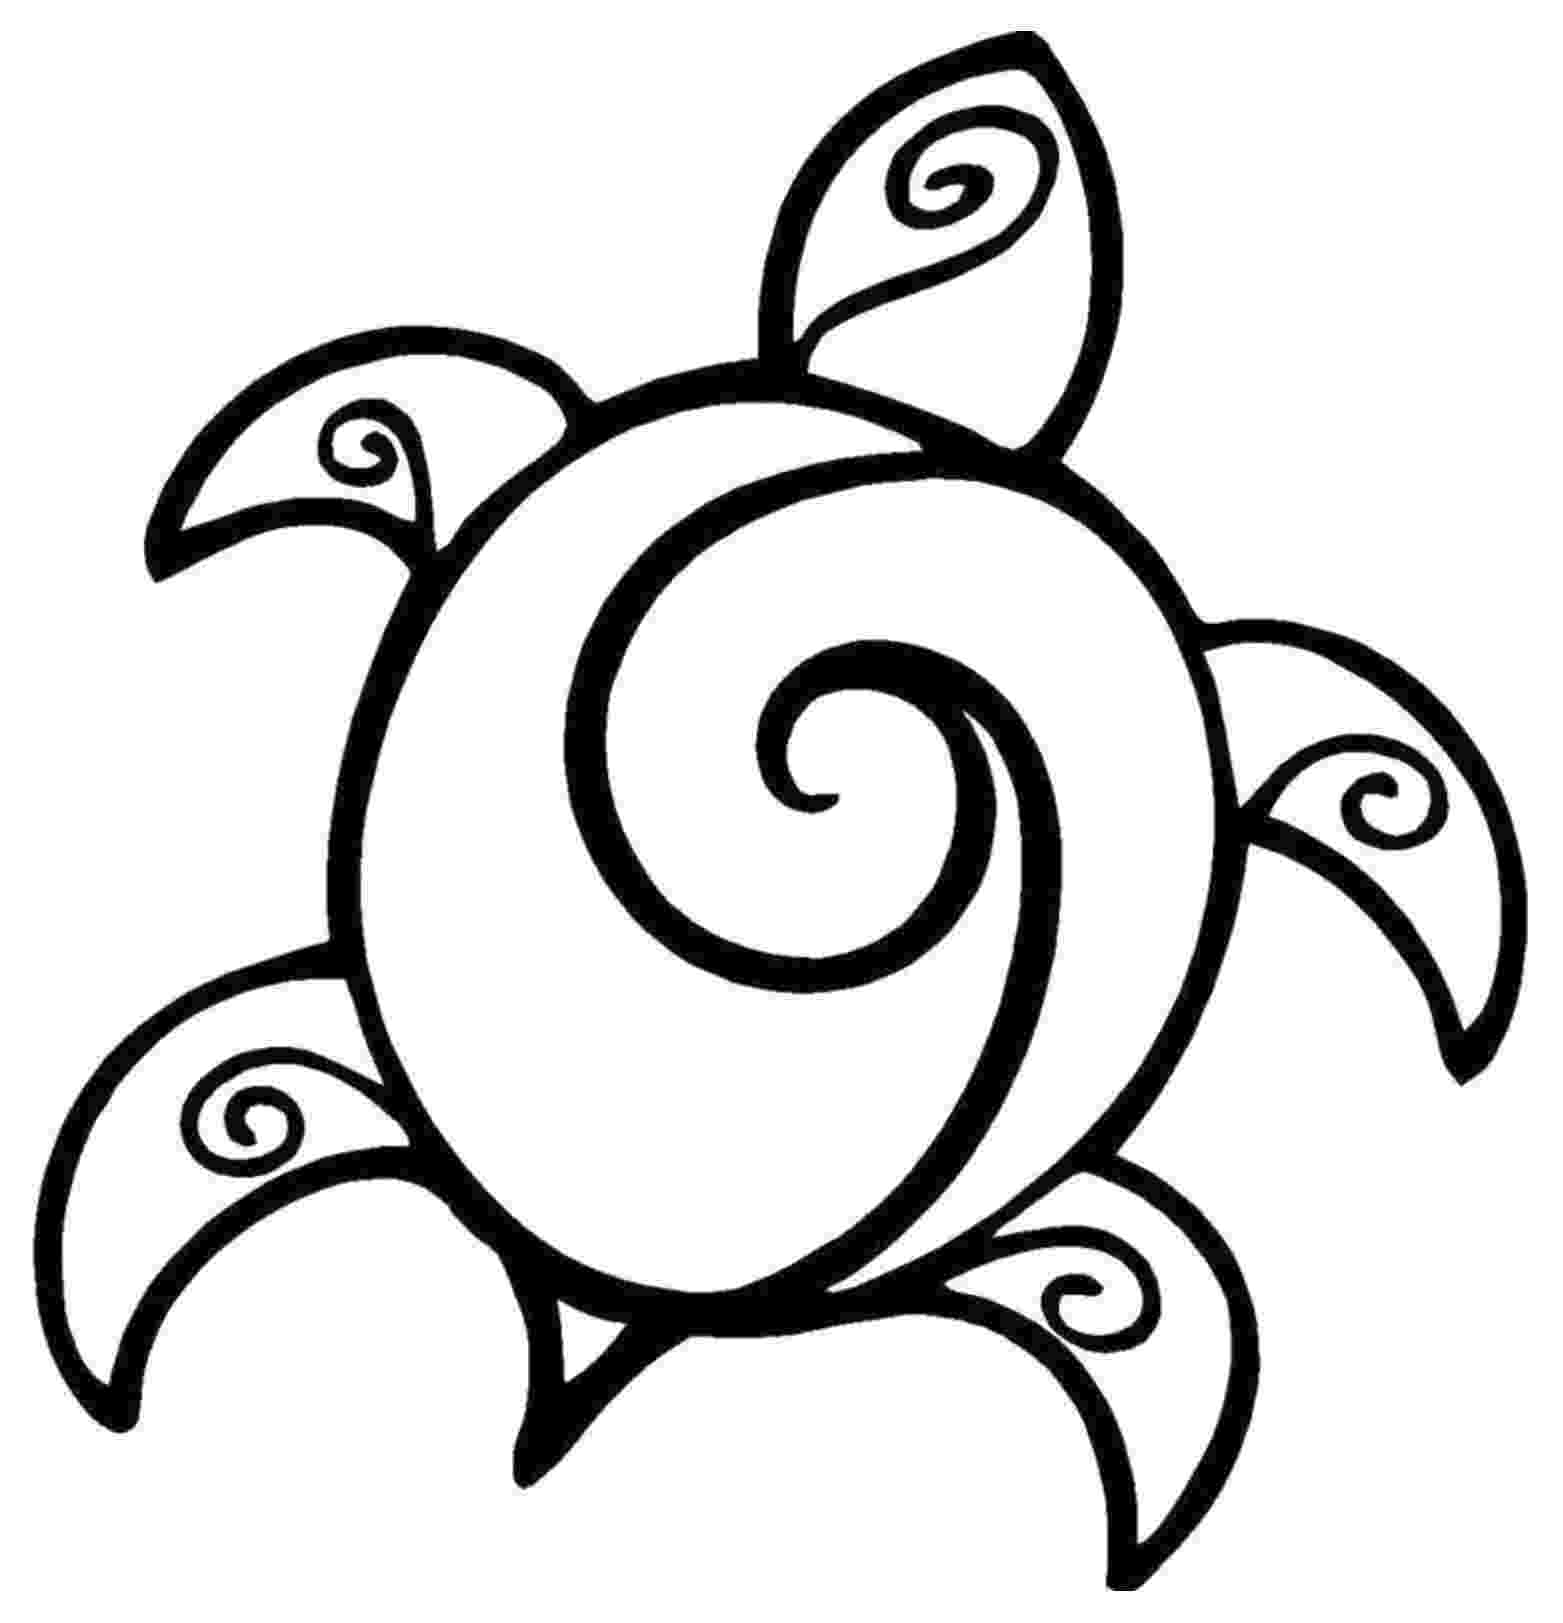 turtle coloring pictures to print printable coloring pages dot the dot pictures turtle coloring print to